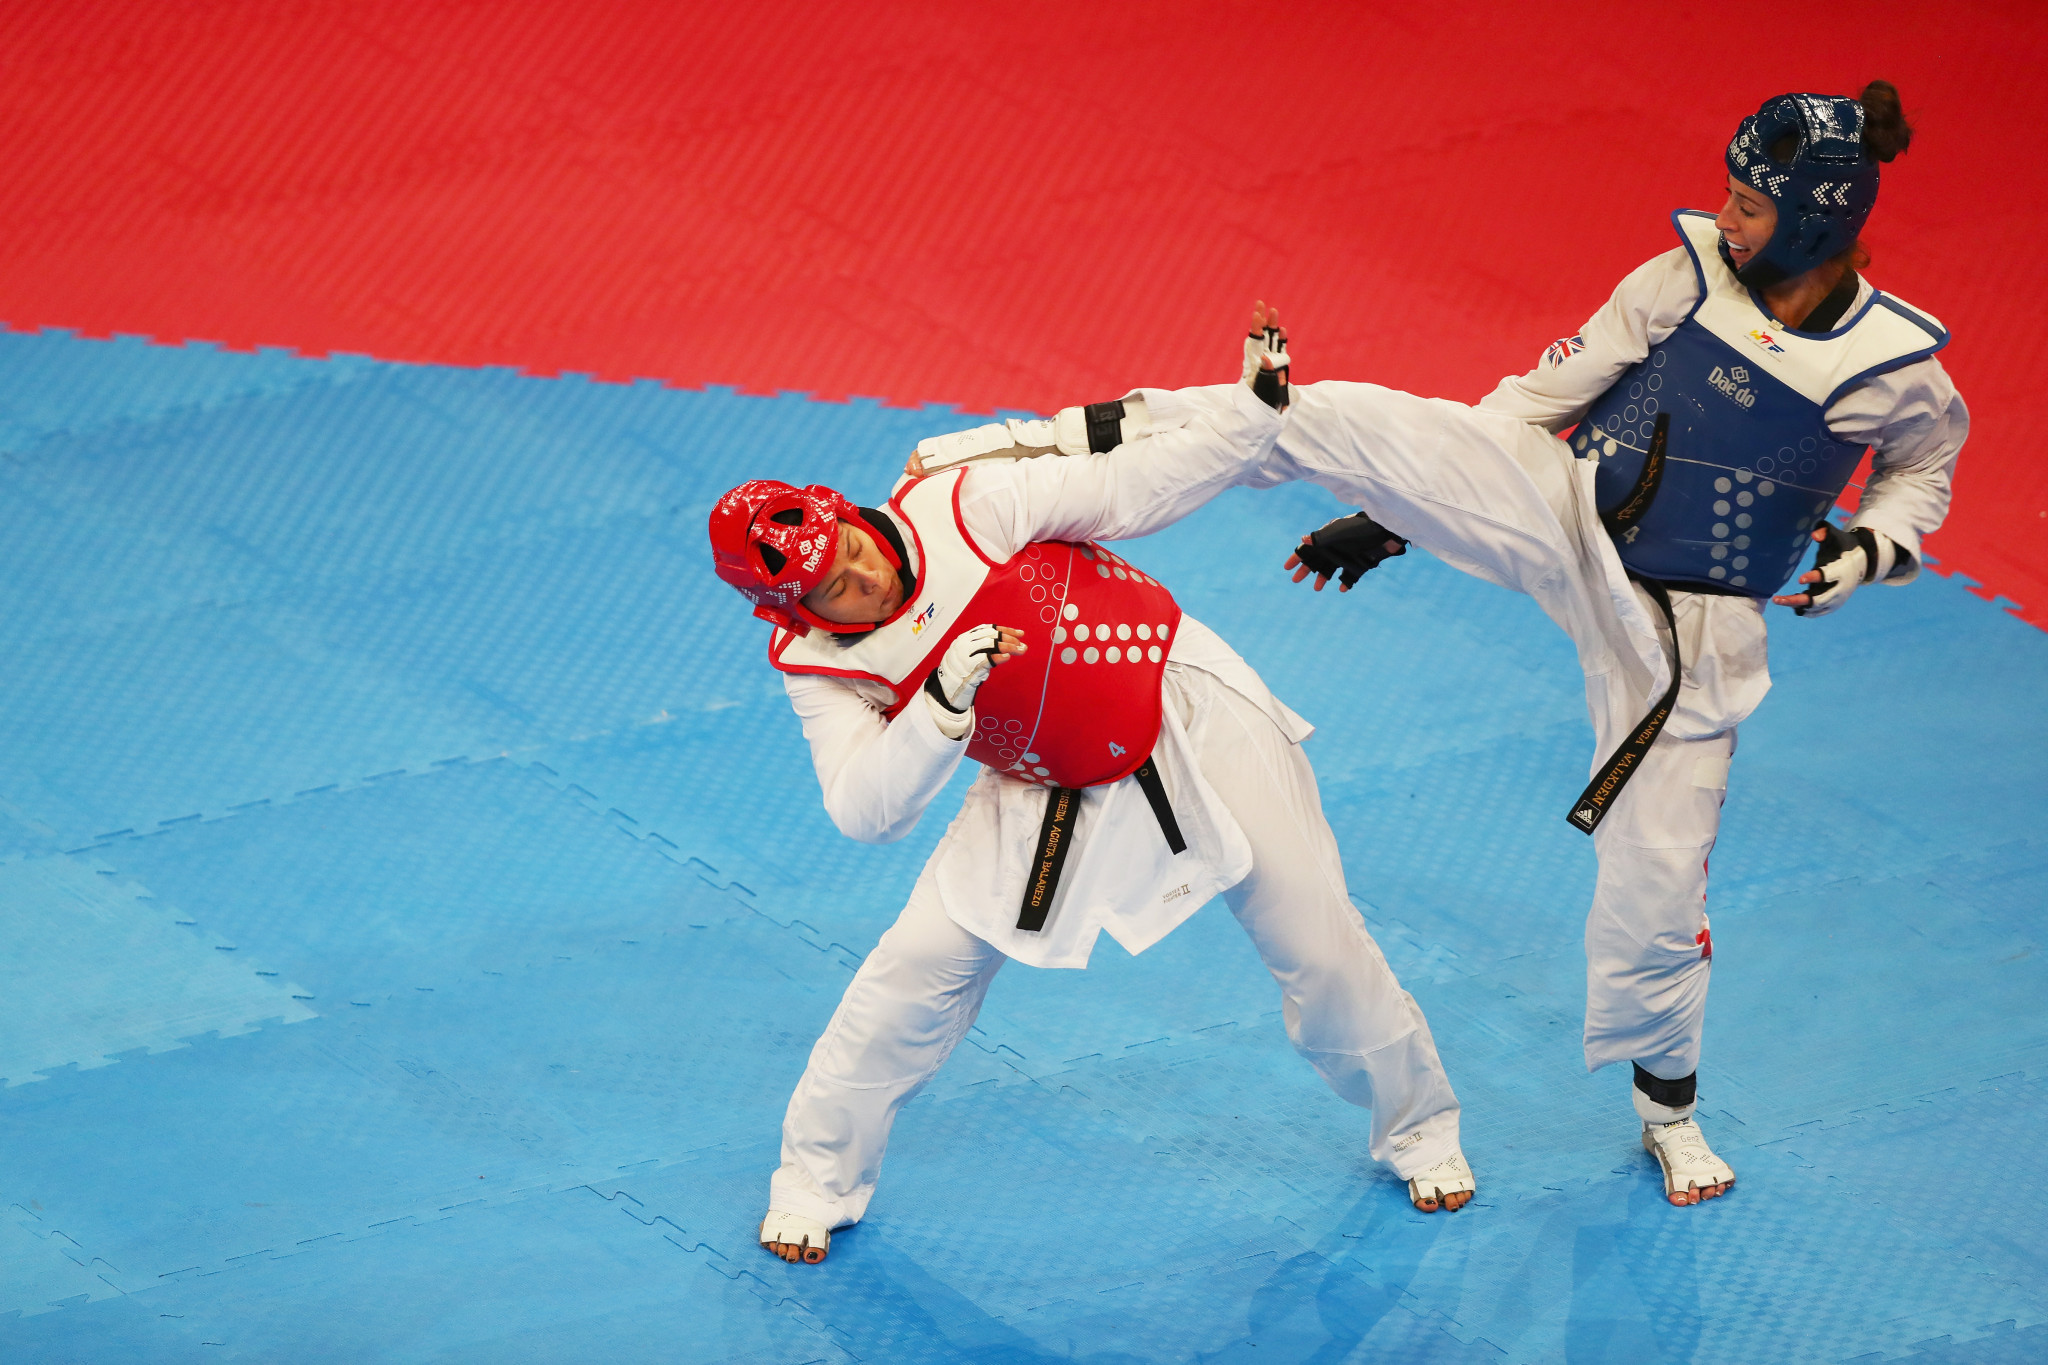 World Taekwondo claim the success of athletes such as Bianca Walkden mean the sport is popular in England and it would be a strong addition to the Commonwealth Games programme at Birmingham 2022 ©Getty Images